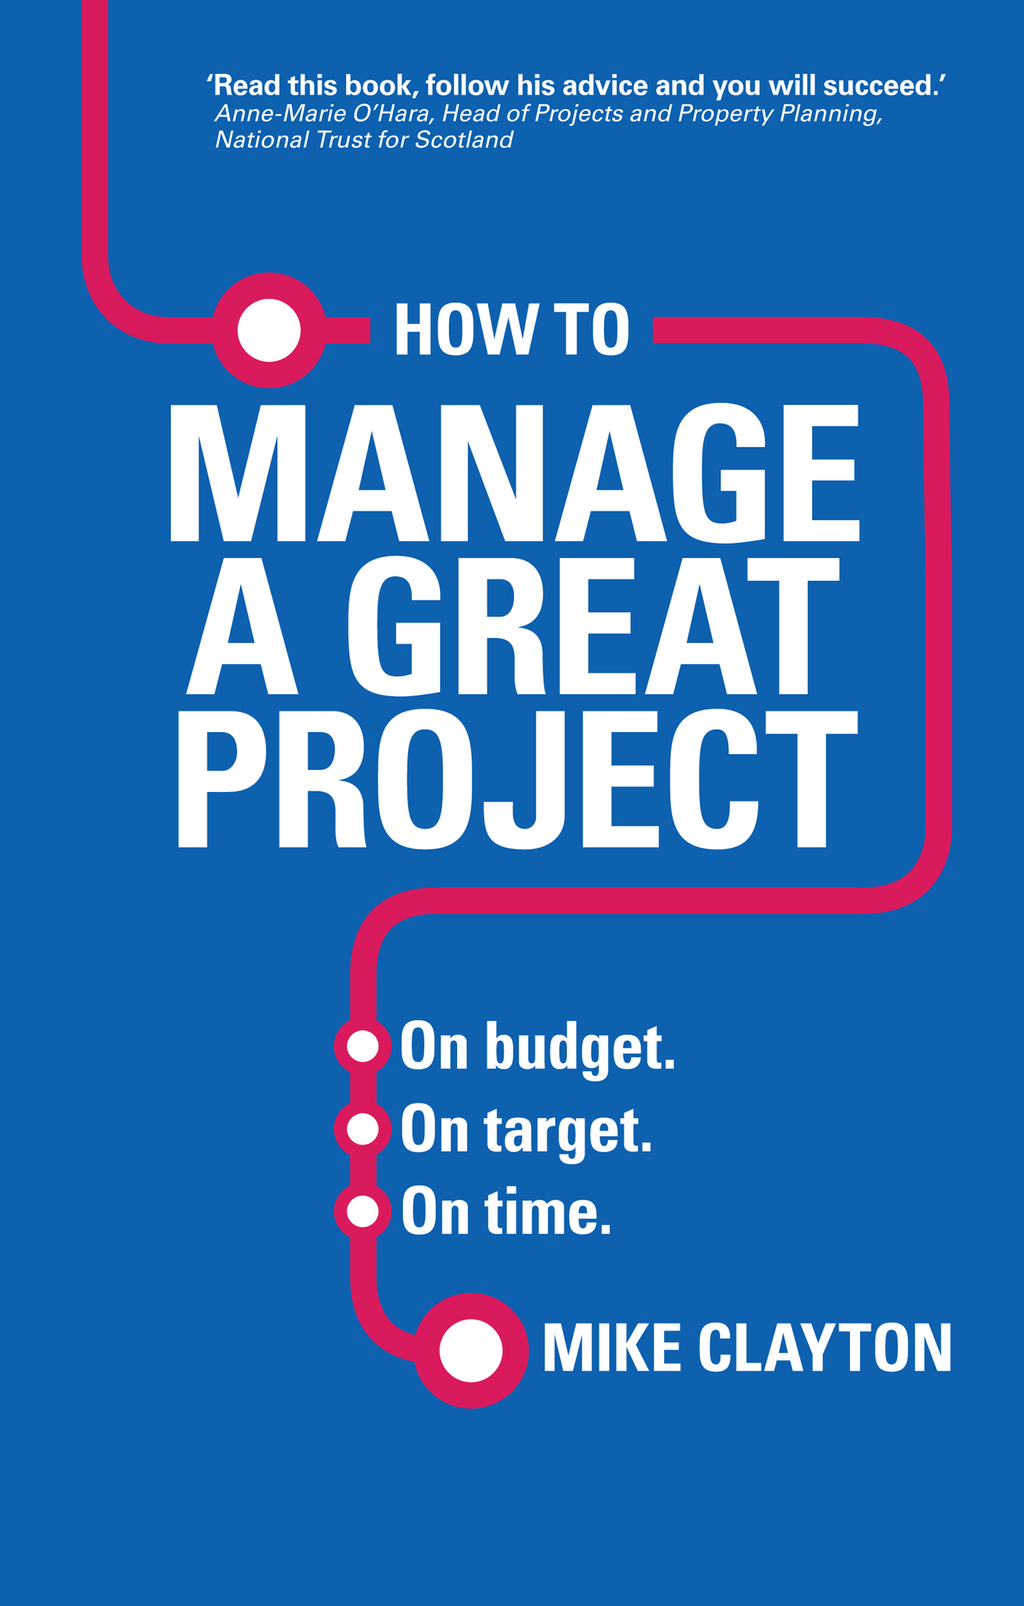 How to Manage a Great Project On budget. On target. On time.